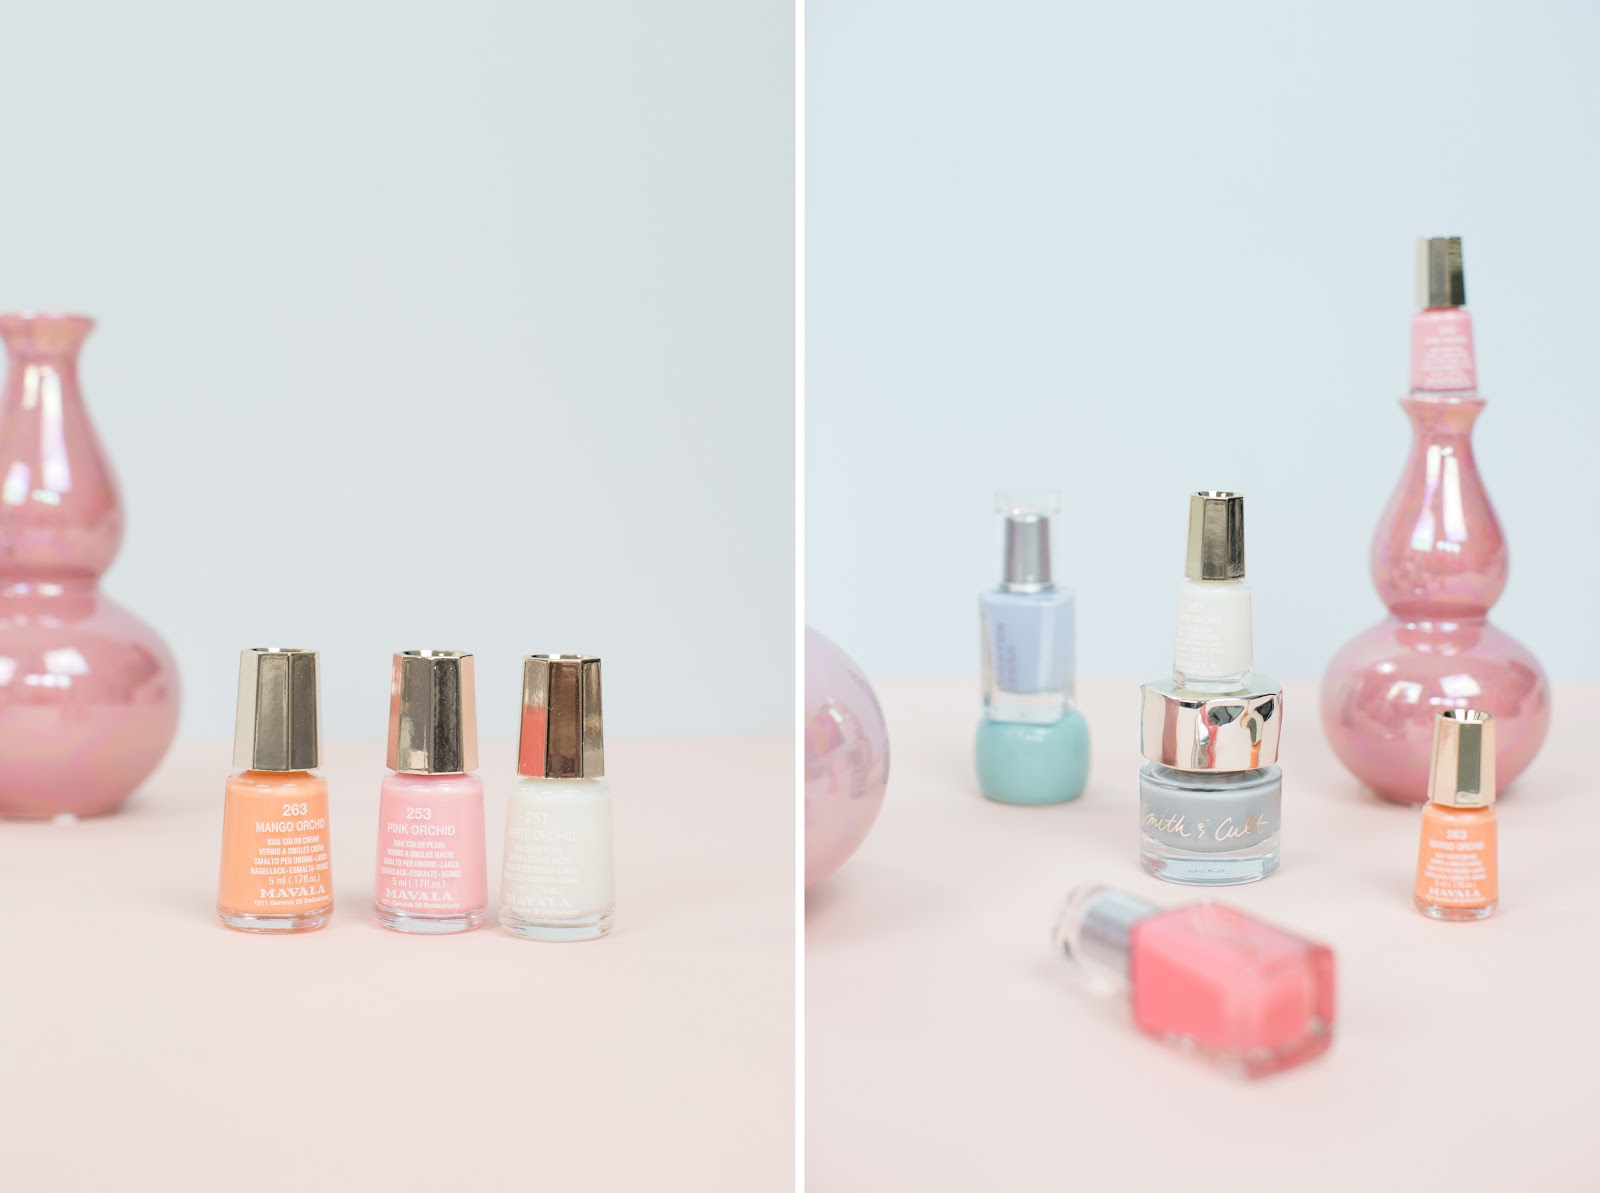 SPRING READY NAIL SHADES THAT ARE ALSO 5-FREE - Britton Loves